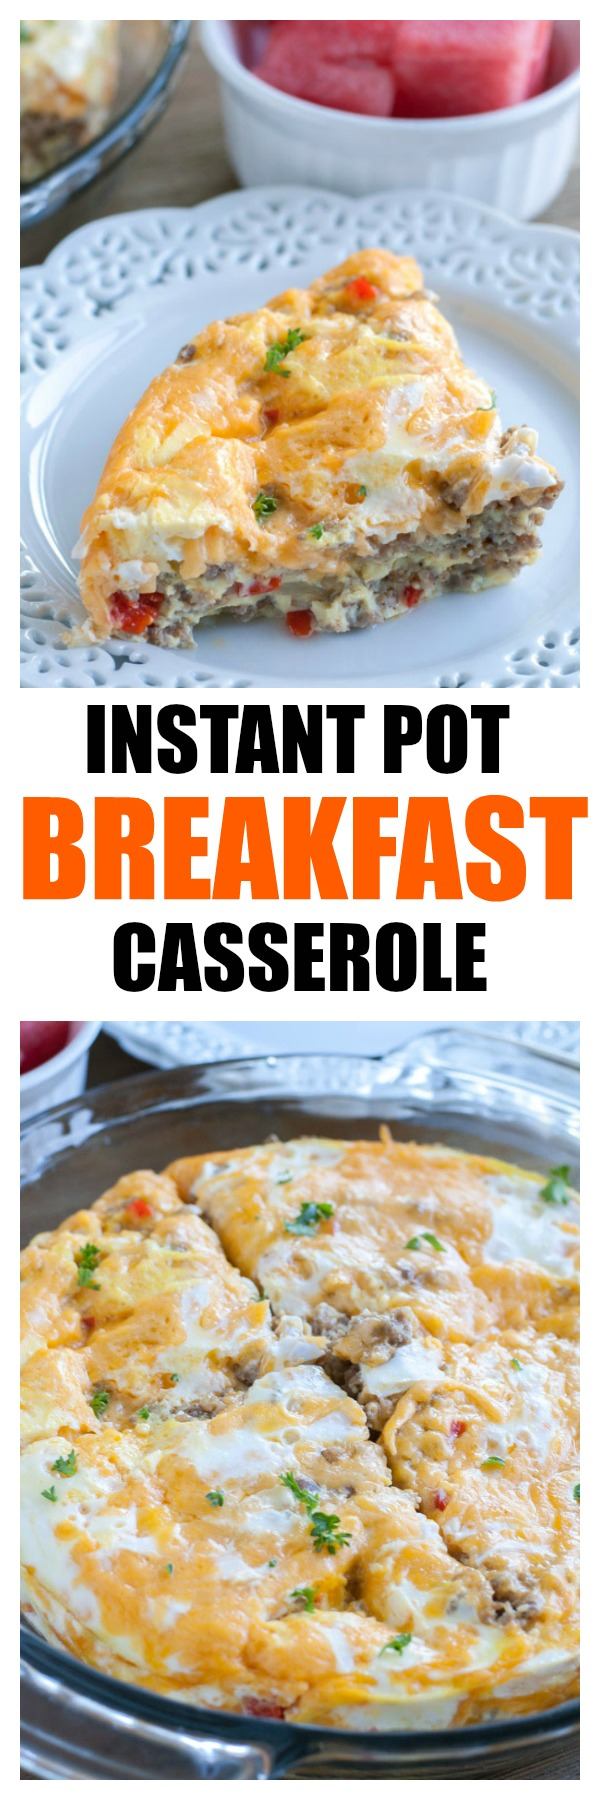 Instant Pot Breakfast Casserole filled with sausage, cheese, peppers and onions. Great for breakfast, lunch and dinner! #breakfastcasserole #casserole #instantpotbreakfast #instantpotbreakfastcasserole #pressurecookerbreakfast